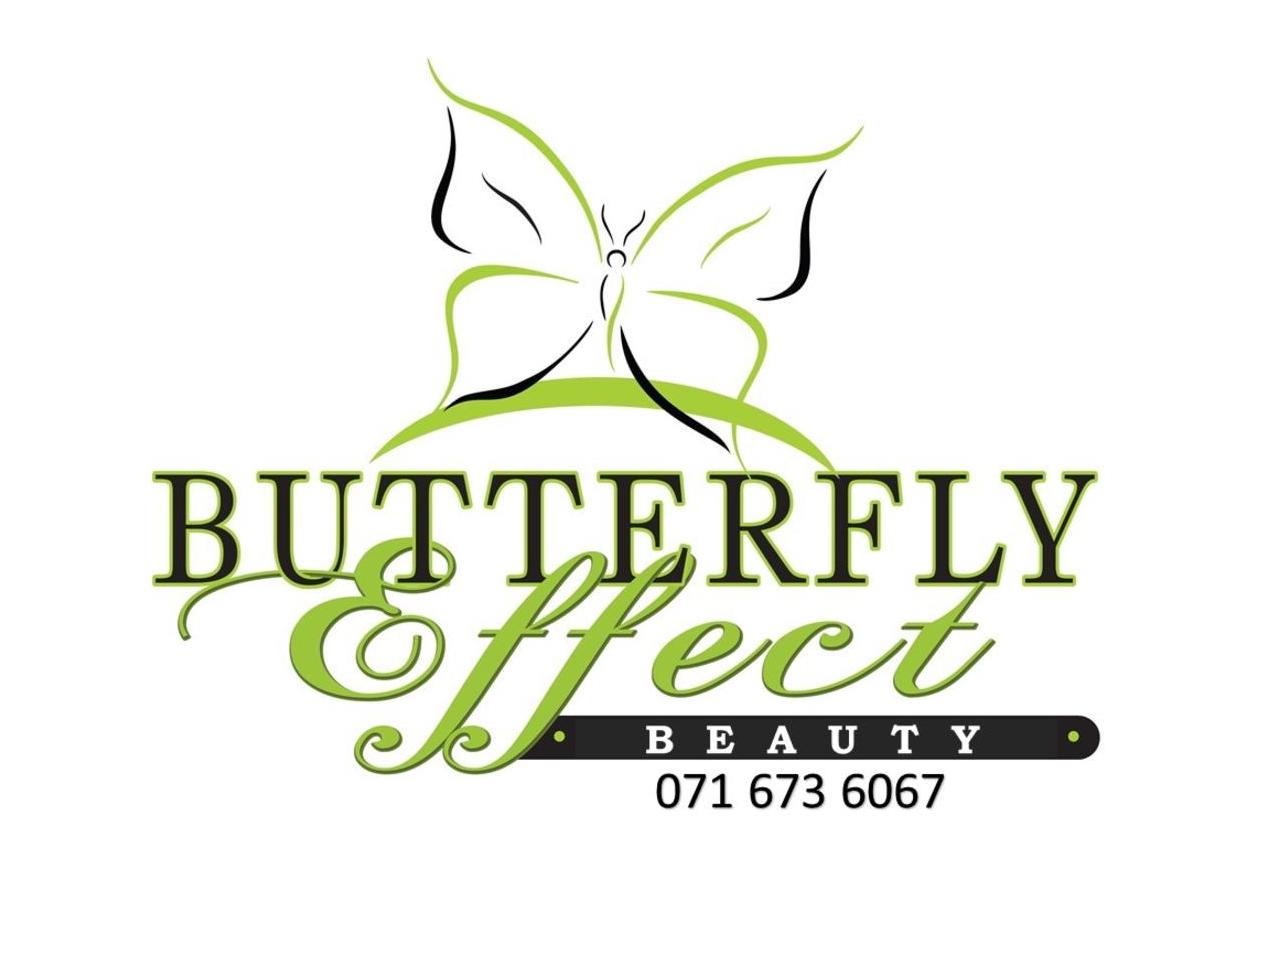 BUTTERFLY EFFECT-page-001